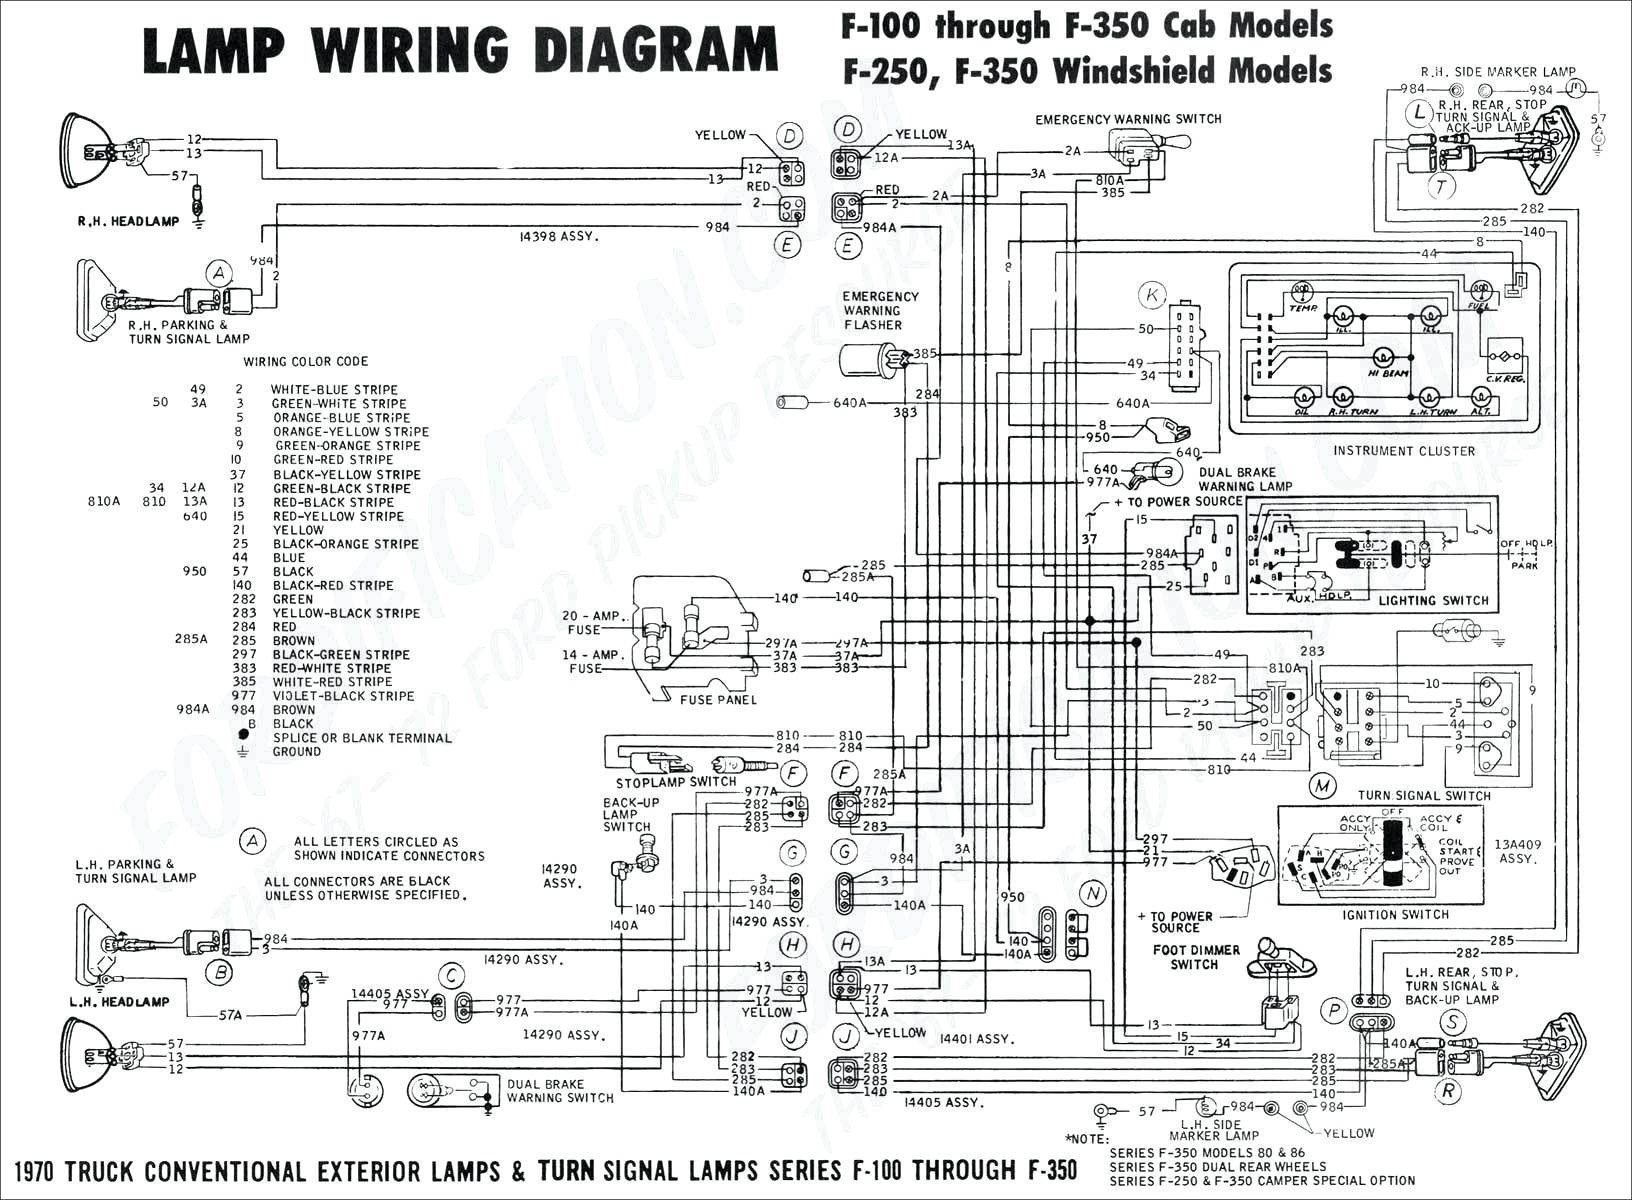 Boeing Wiring Diagrams - For Char Broil Grill Ignition Switch Wiring Diagram  - bullet-squier.2005vtx.jeanjaures37.frWiring Diagram Resource